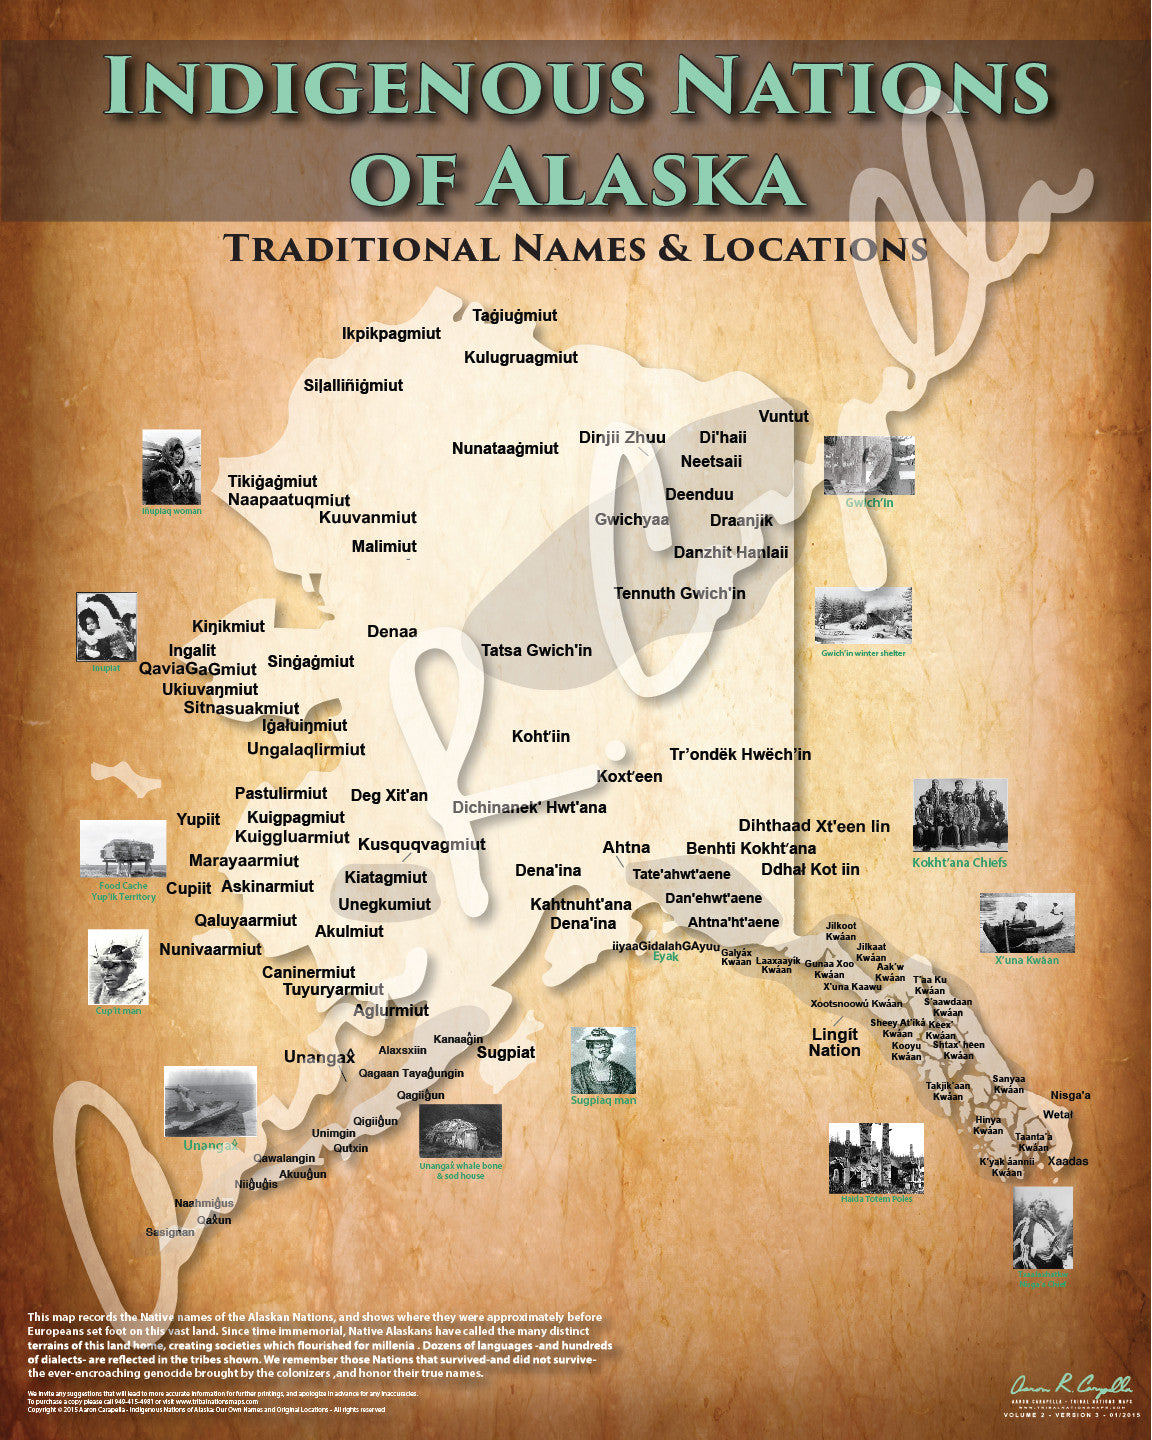 Alaska - Indigenous Nations of Alaska Map - Native Names Only